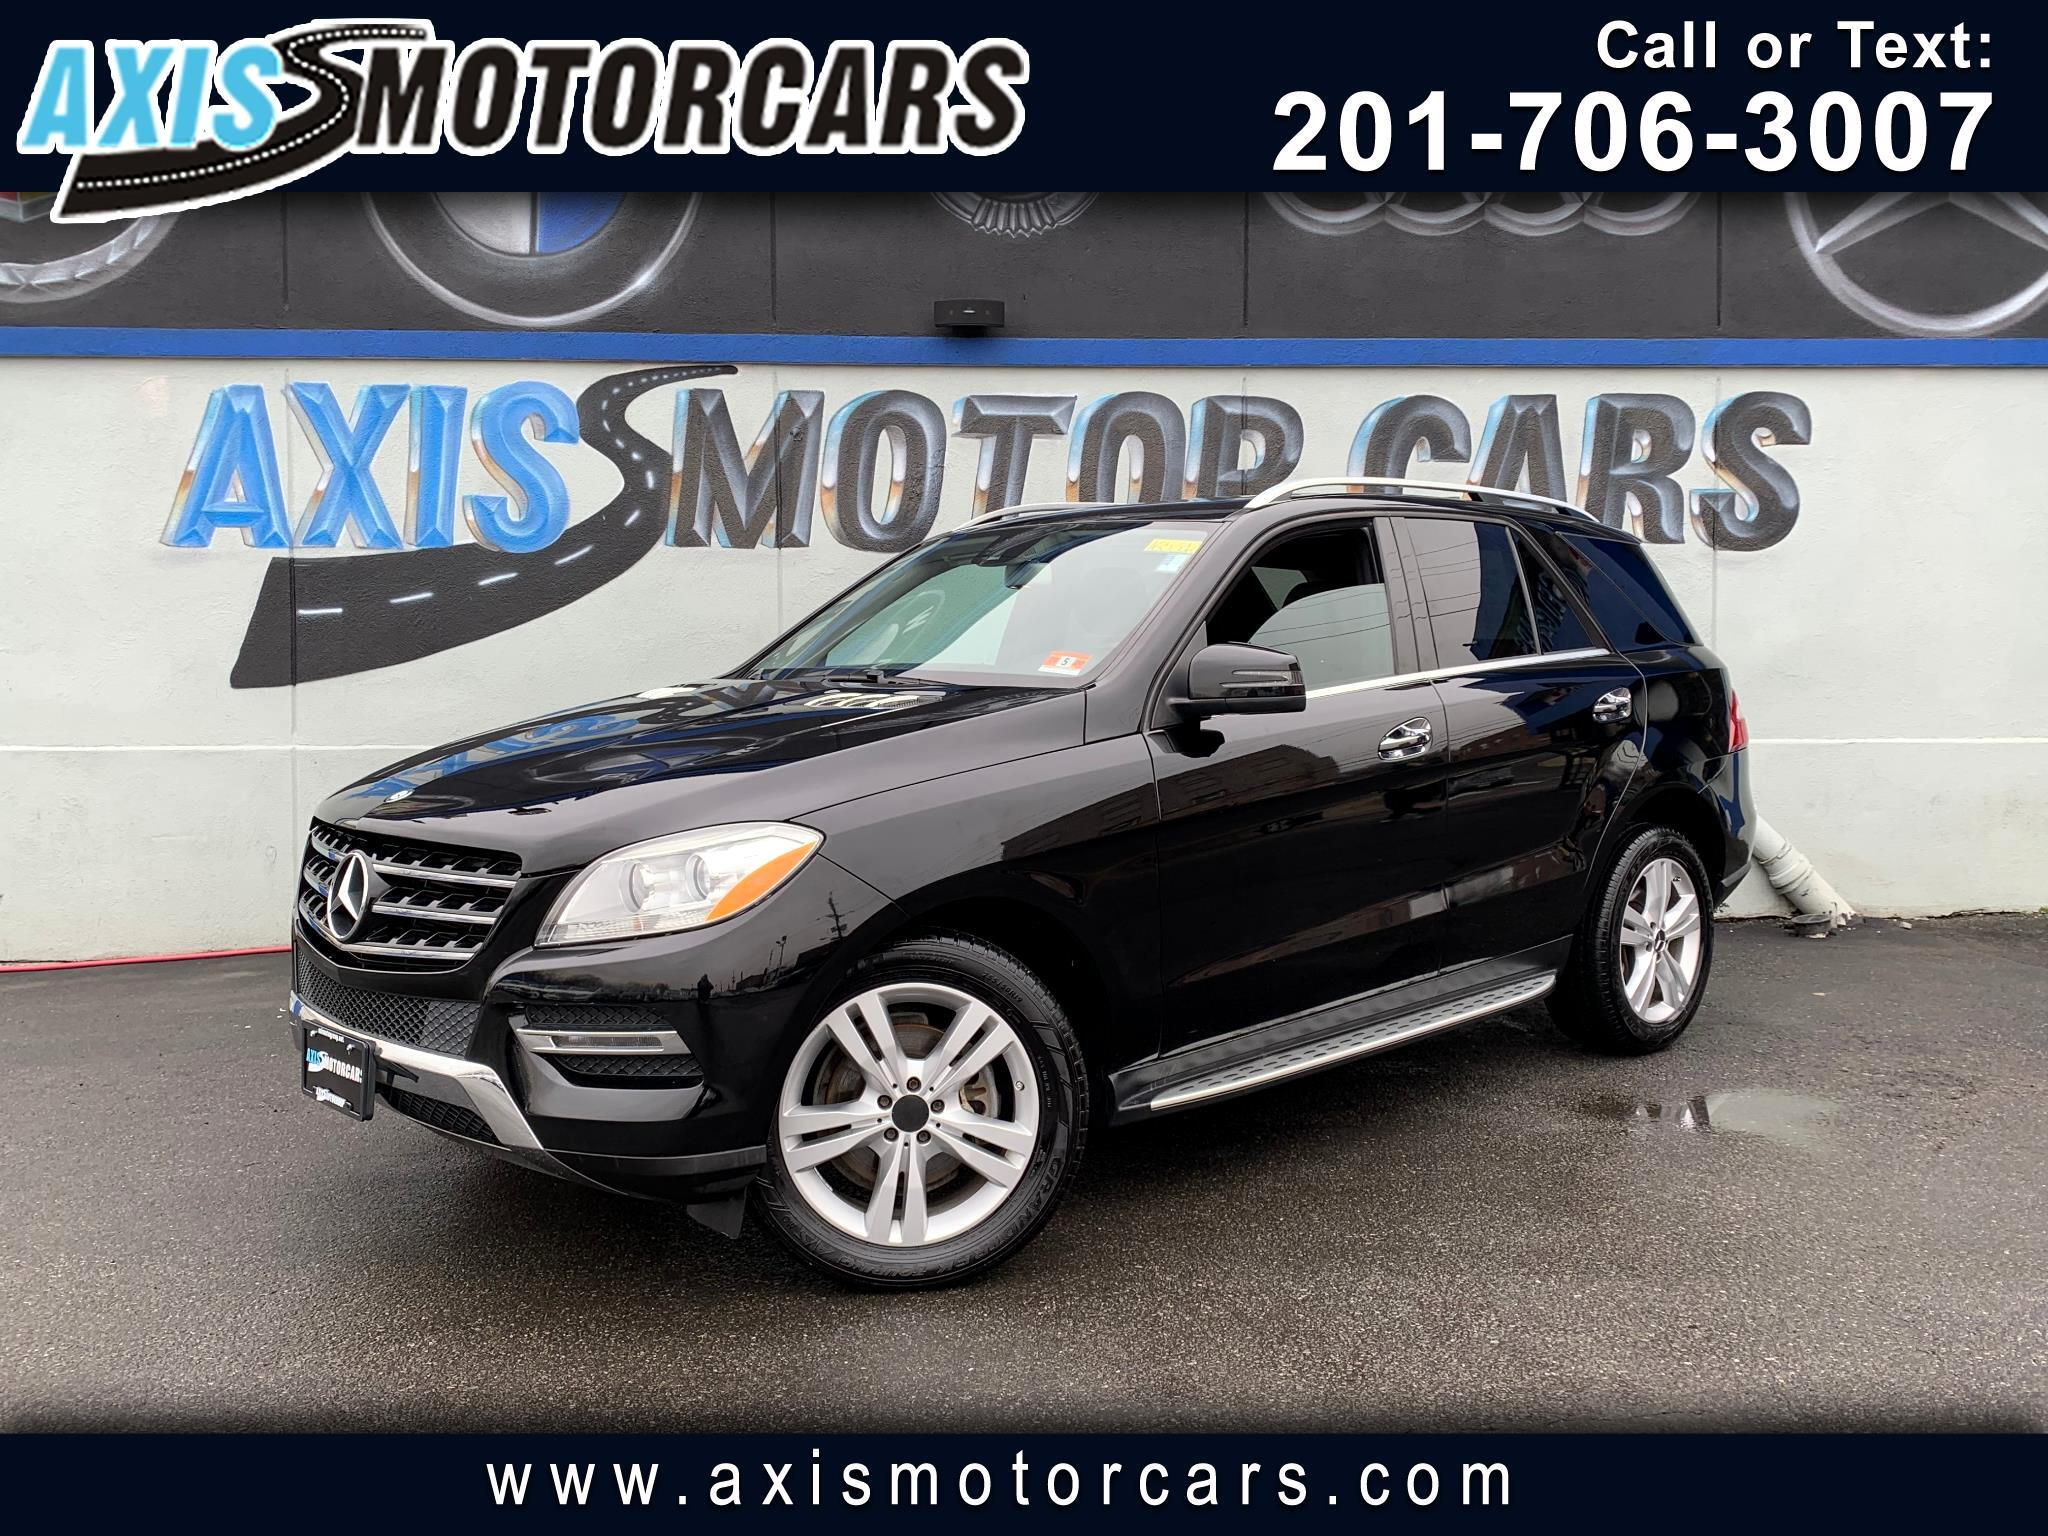 2013 Mercedes-Benz ML350 4MATIC w/Harman Kardon Sound System Navigation